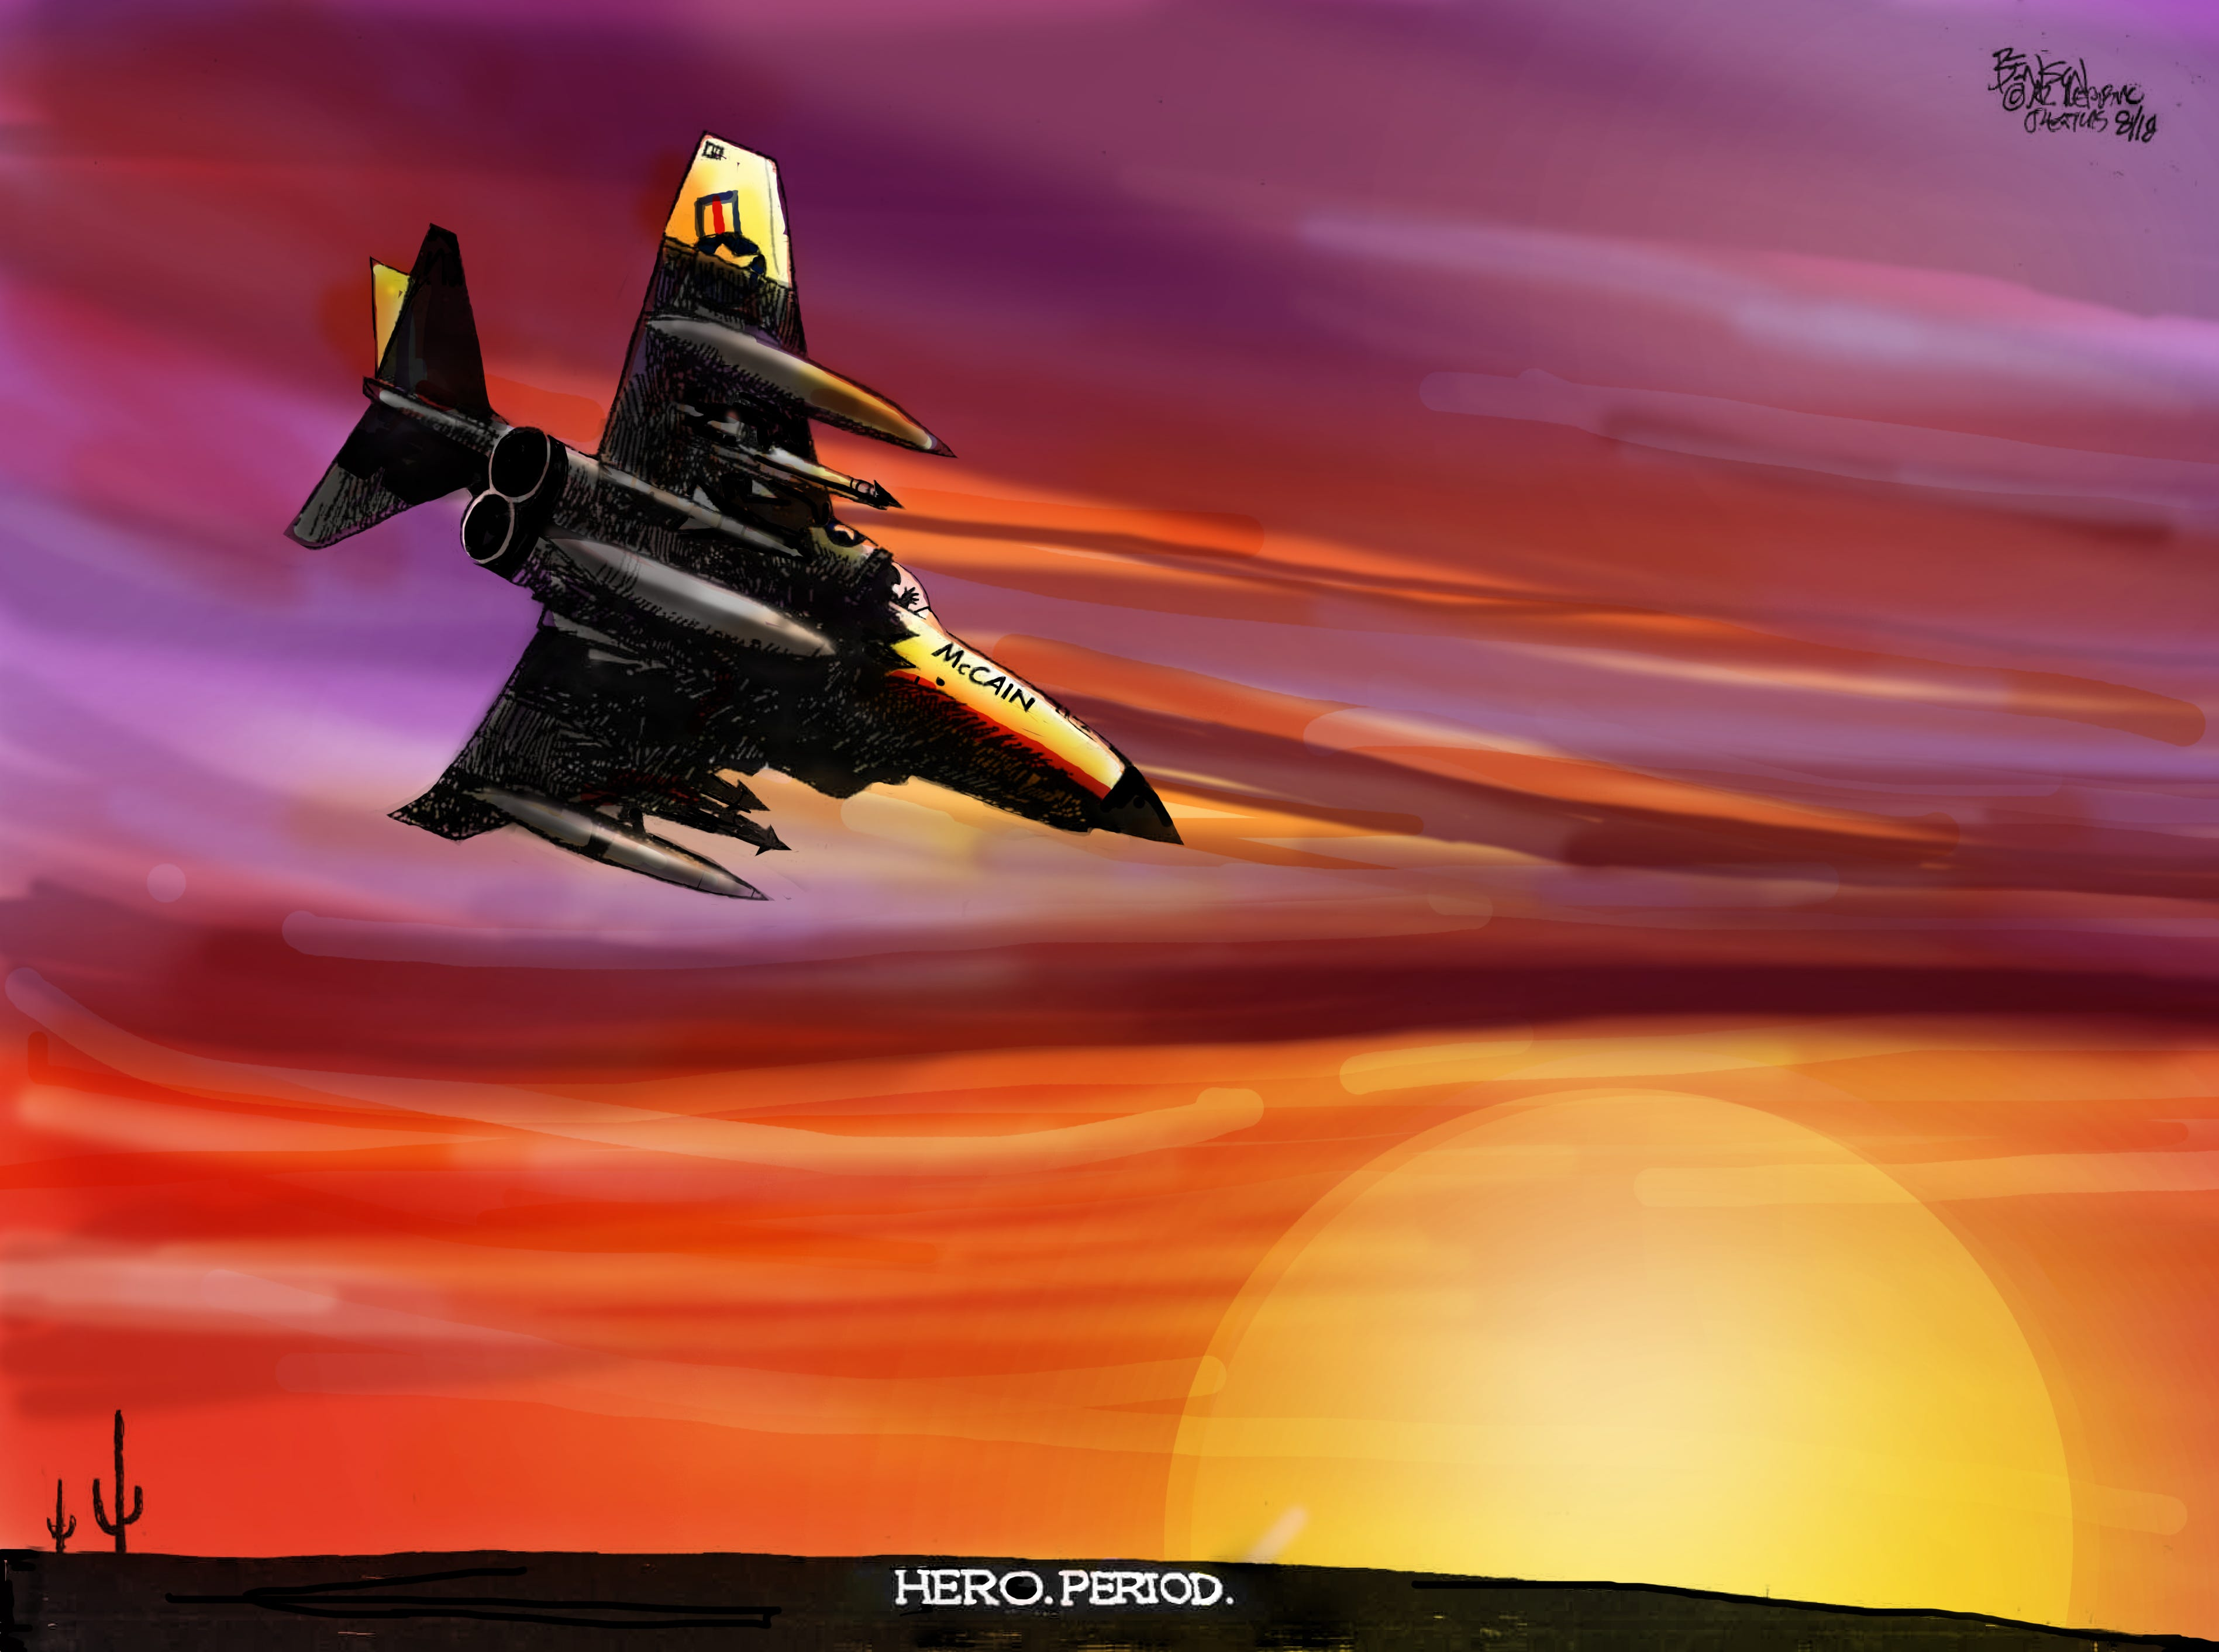 The fighter pilot rides off into the distance a hero. 'Nuff said.